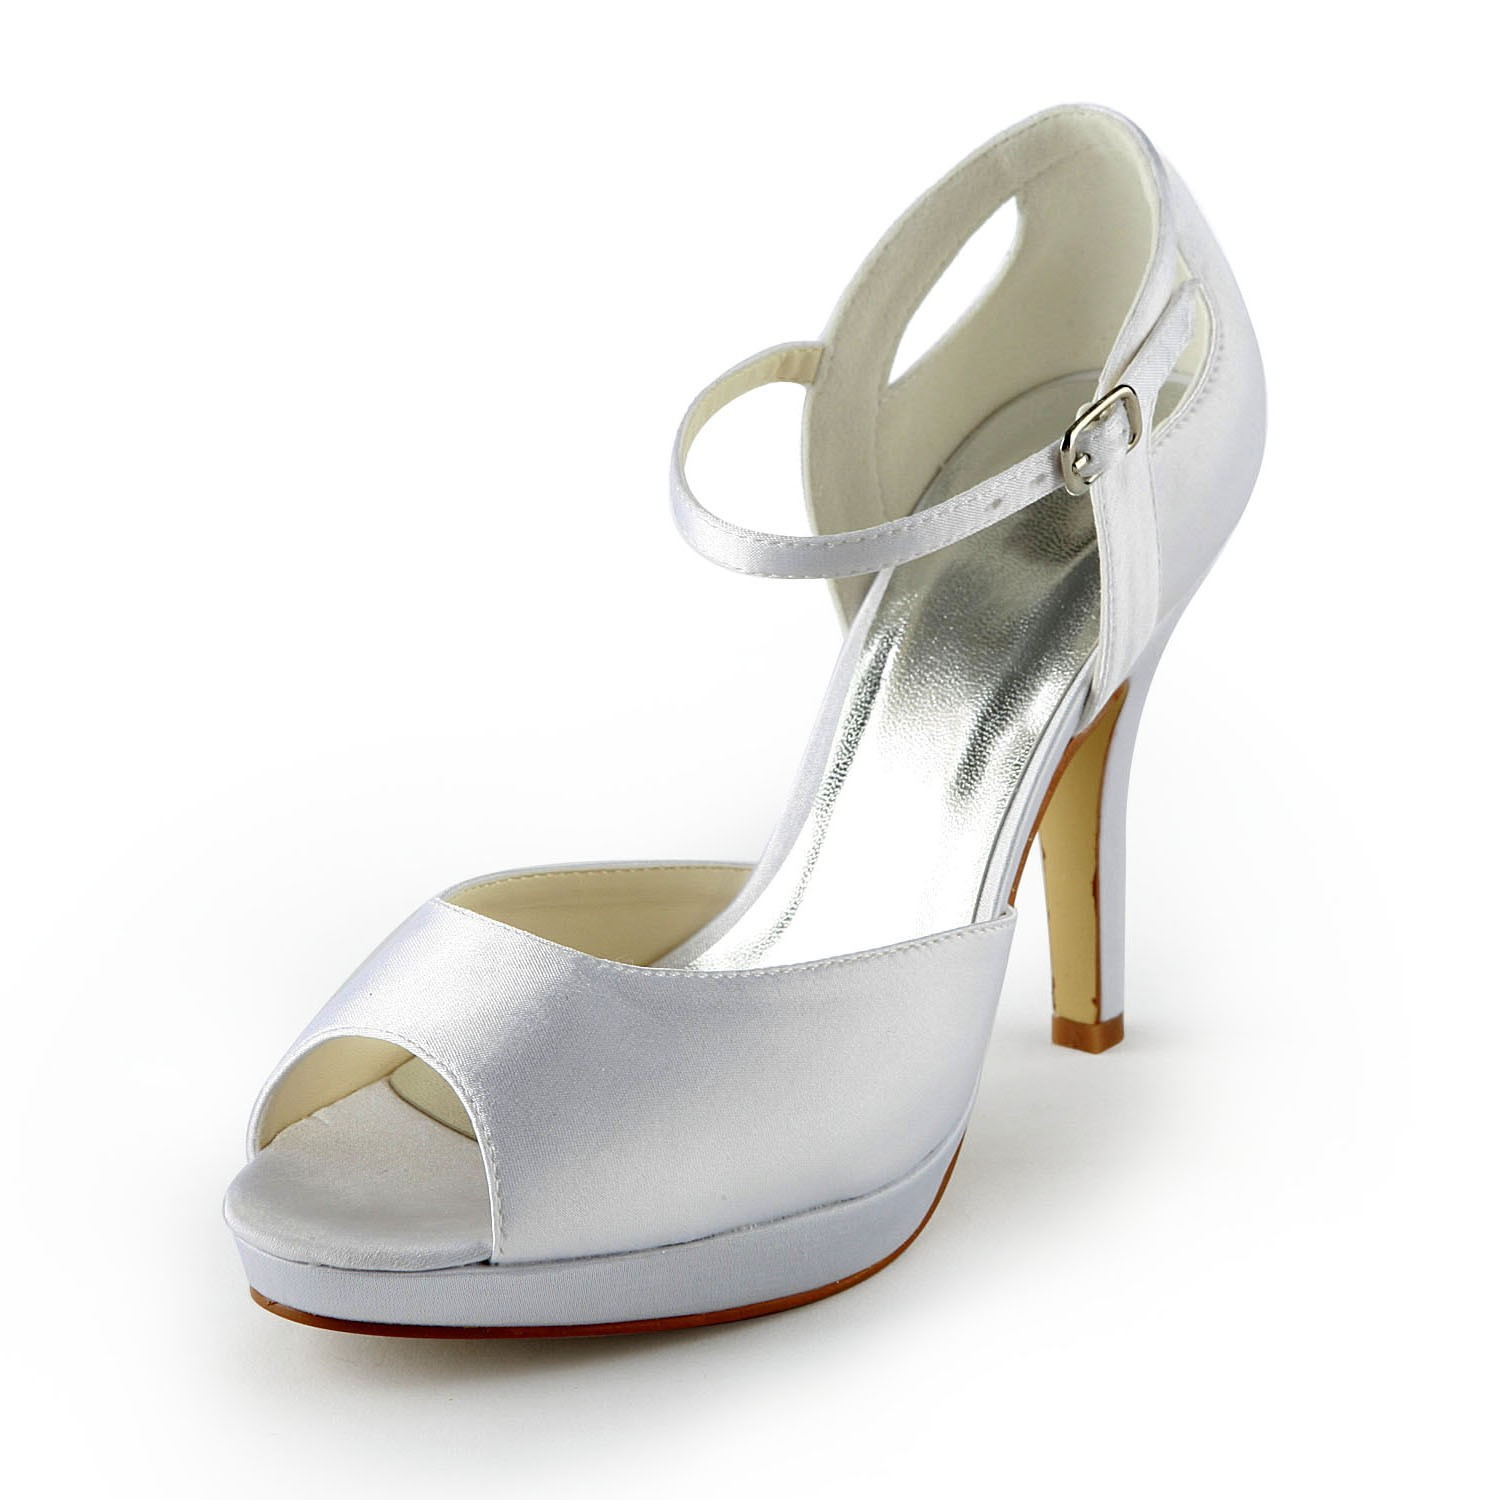 3a7322fb3f8f The Most Fashionable Women s Satin Stiletto Heel Peep Toe Platform Sandals  White Wedding Shoes With Buckle